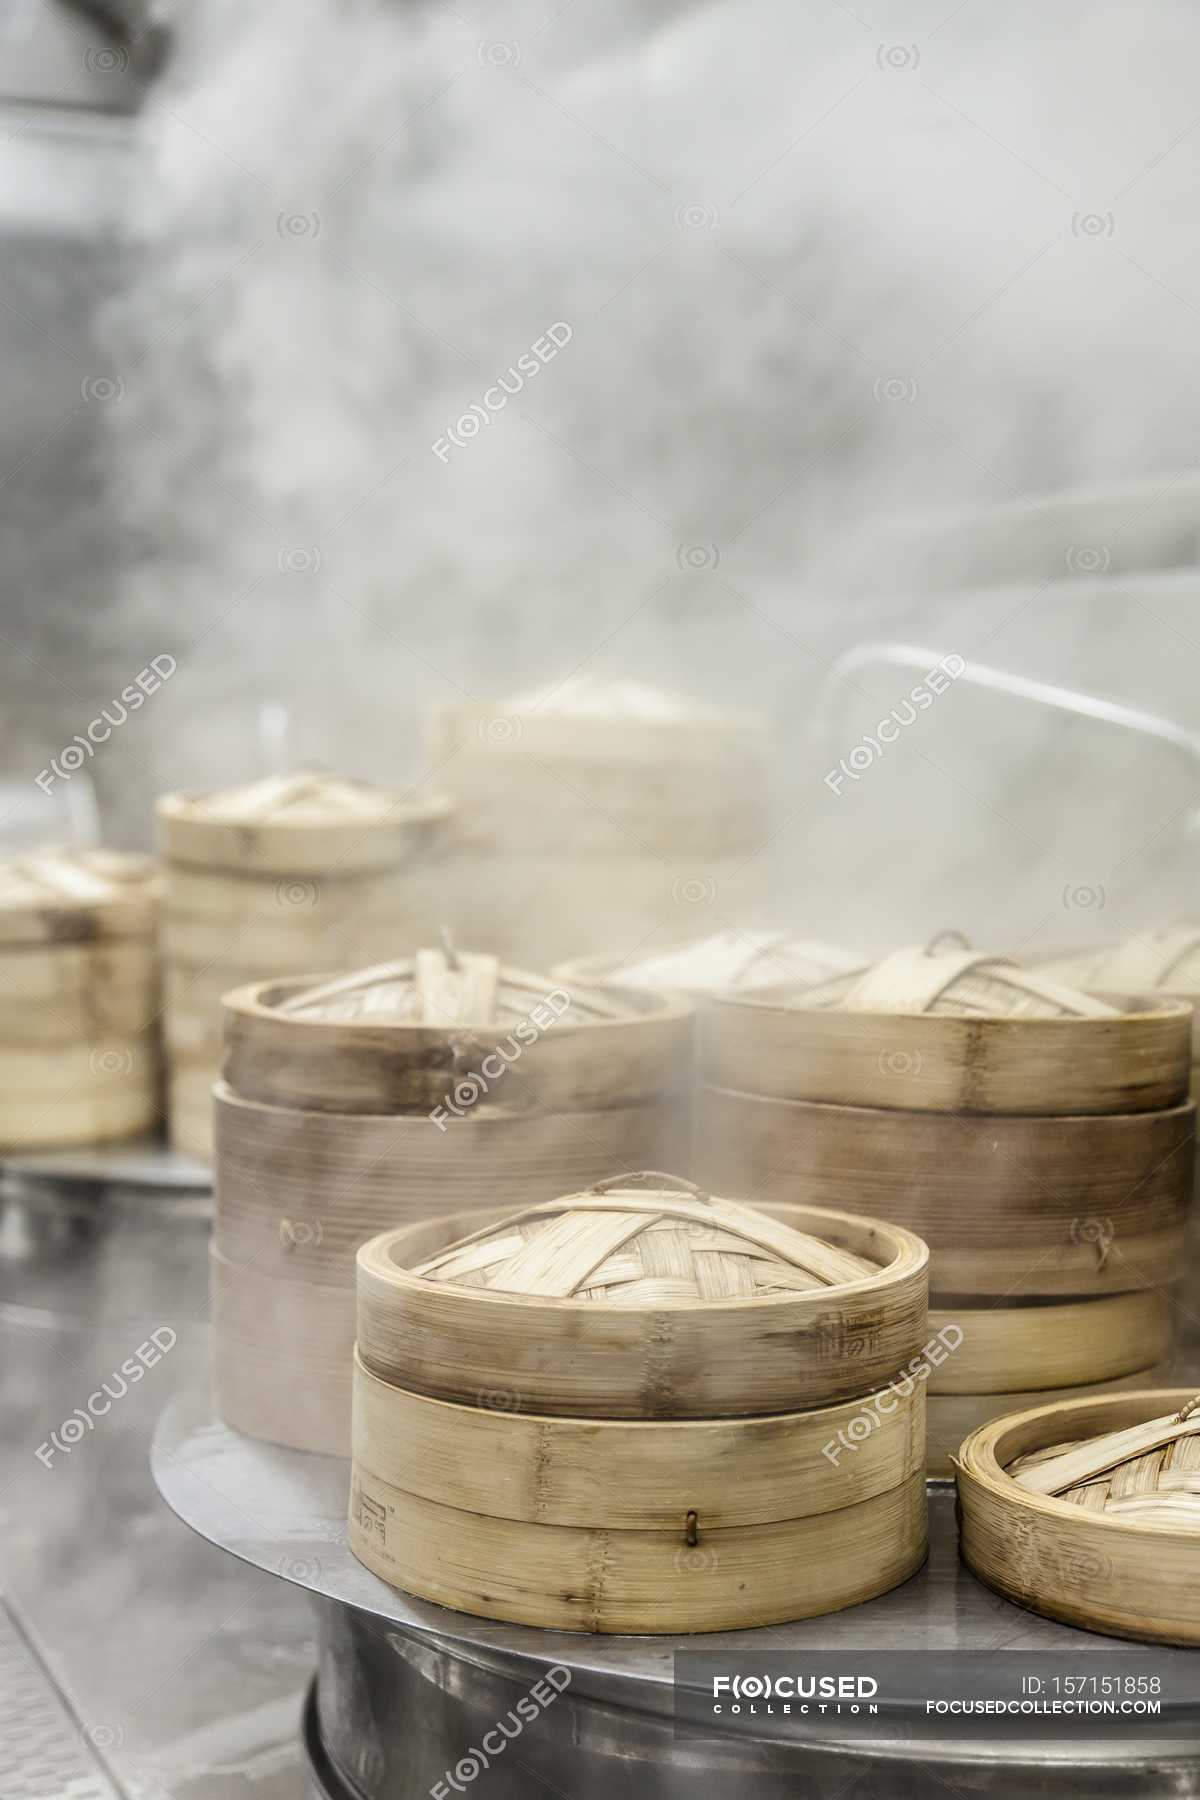 Steamy - Stock Photos, Royalty Free Images | Focused